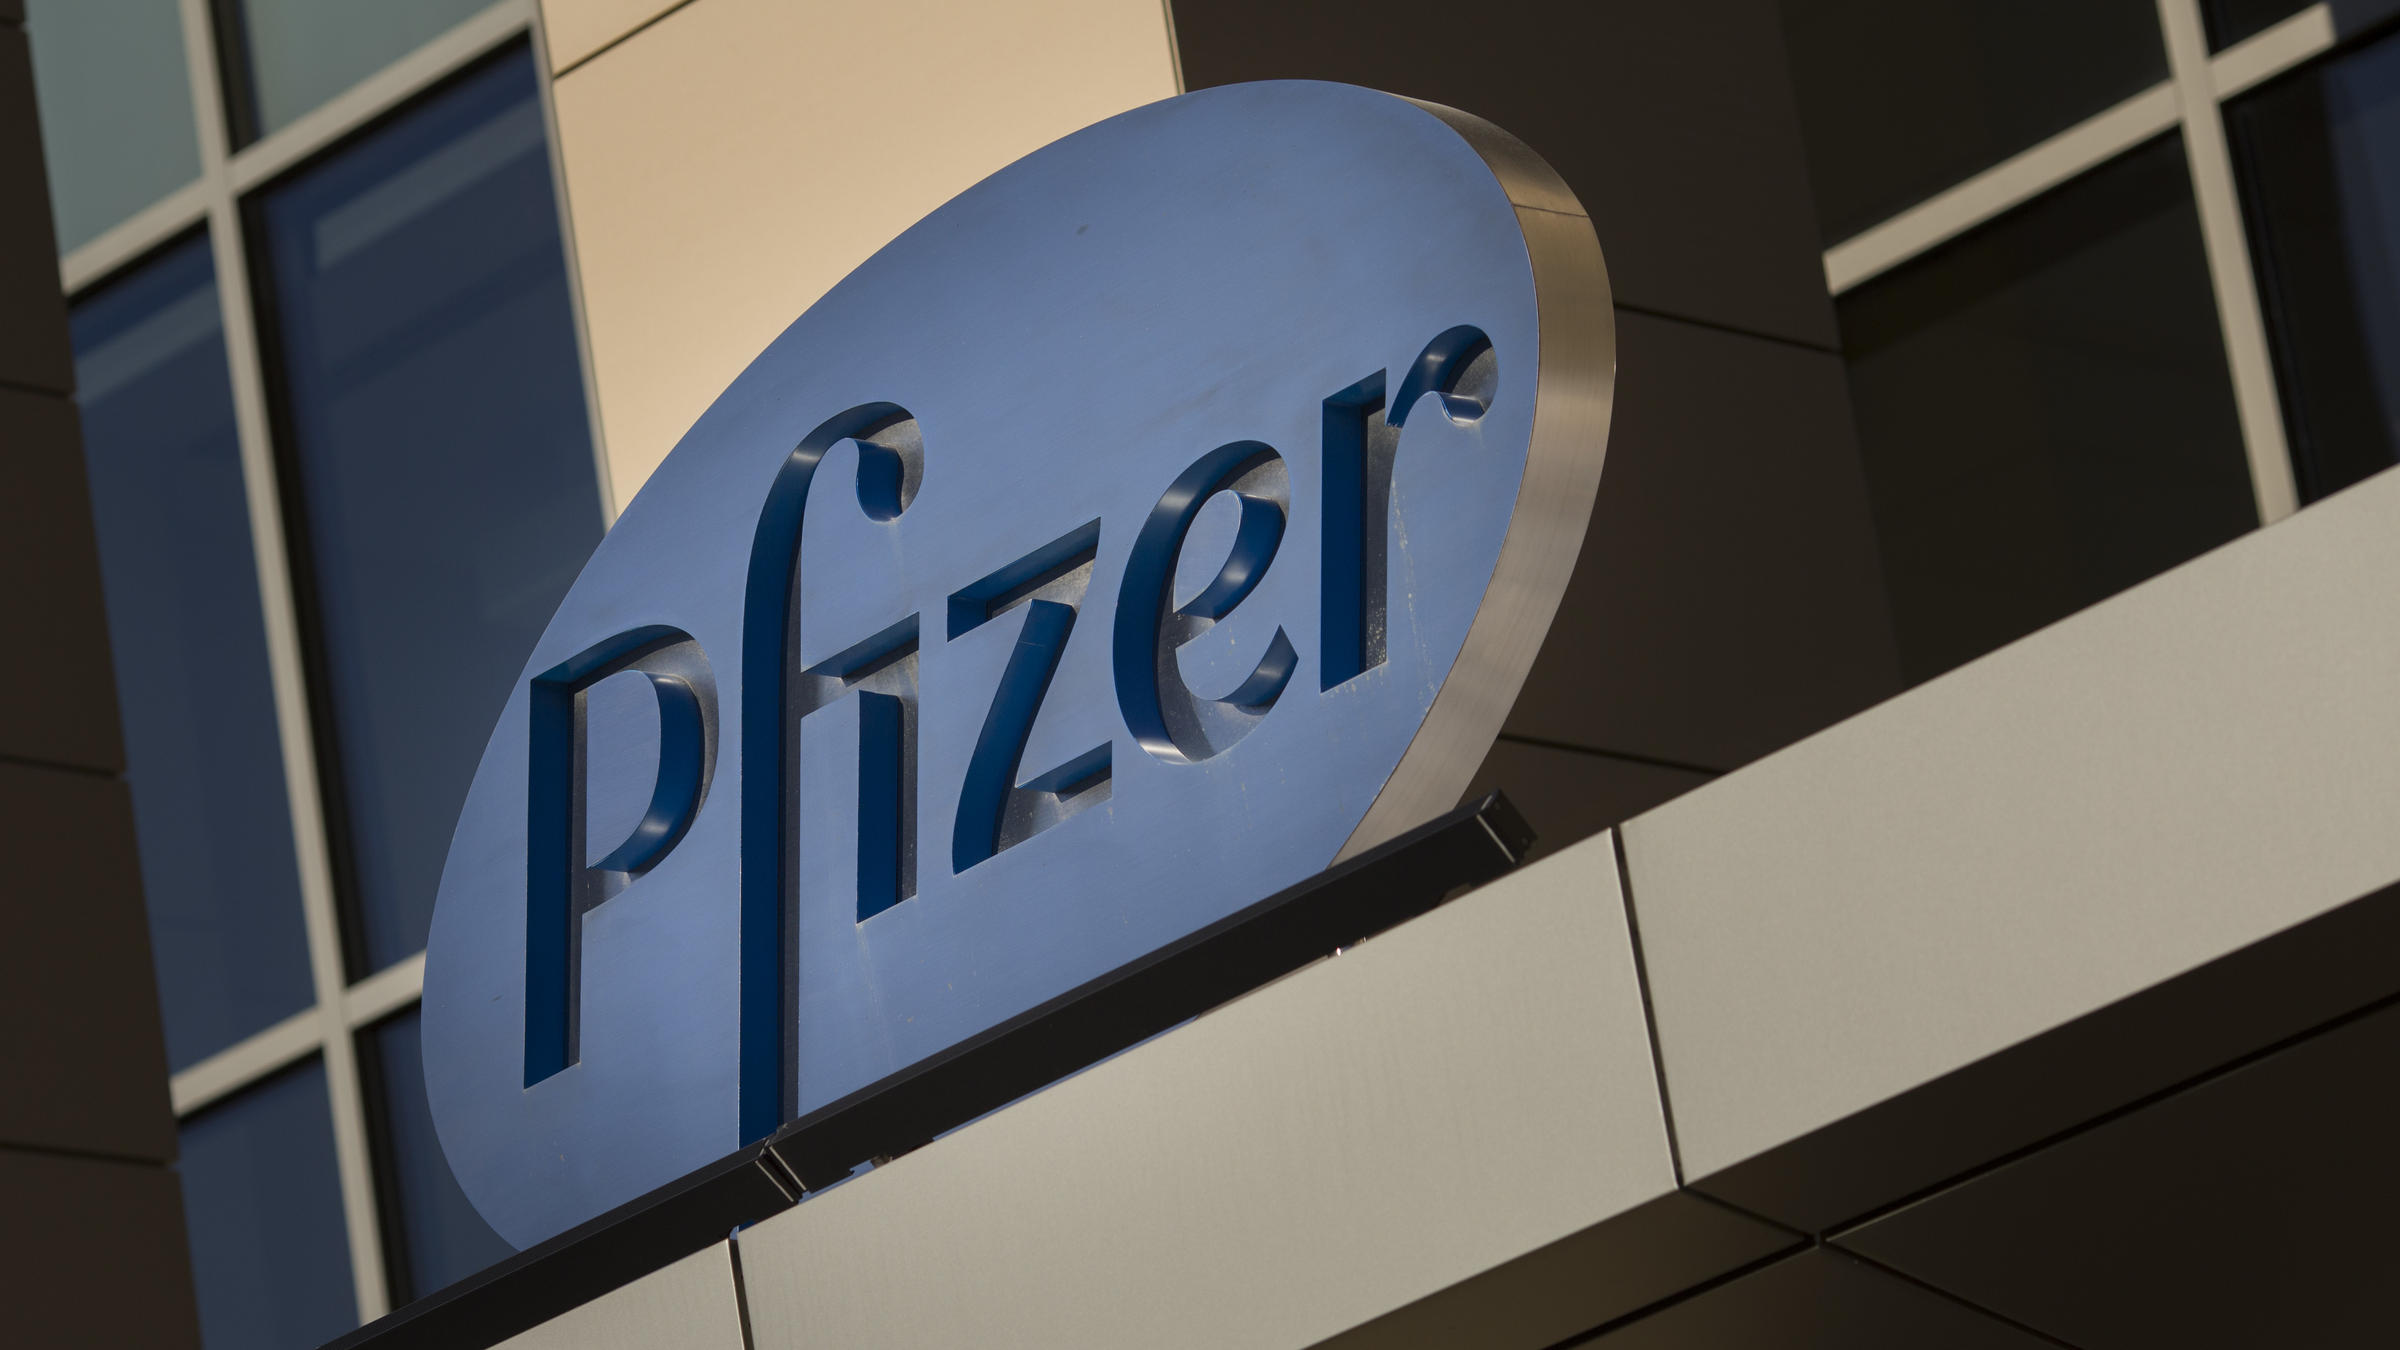 Pfizer drops neuroscience R&D, cutting 300 jobs